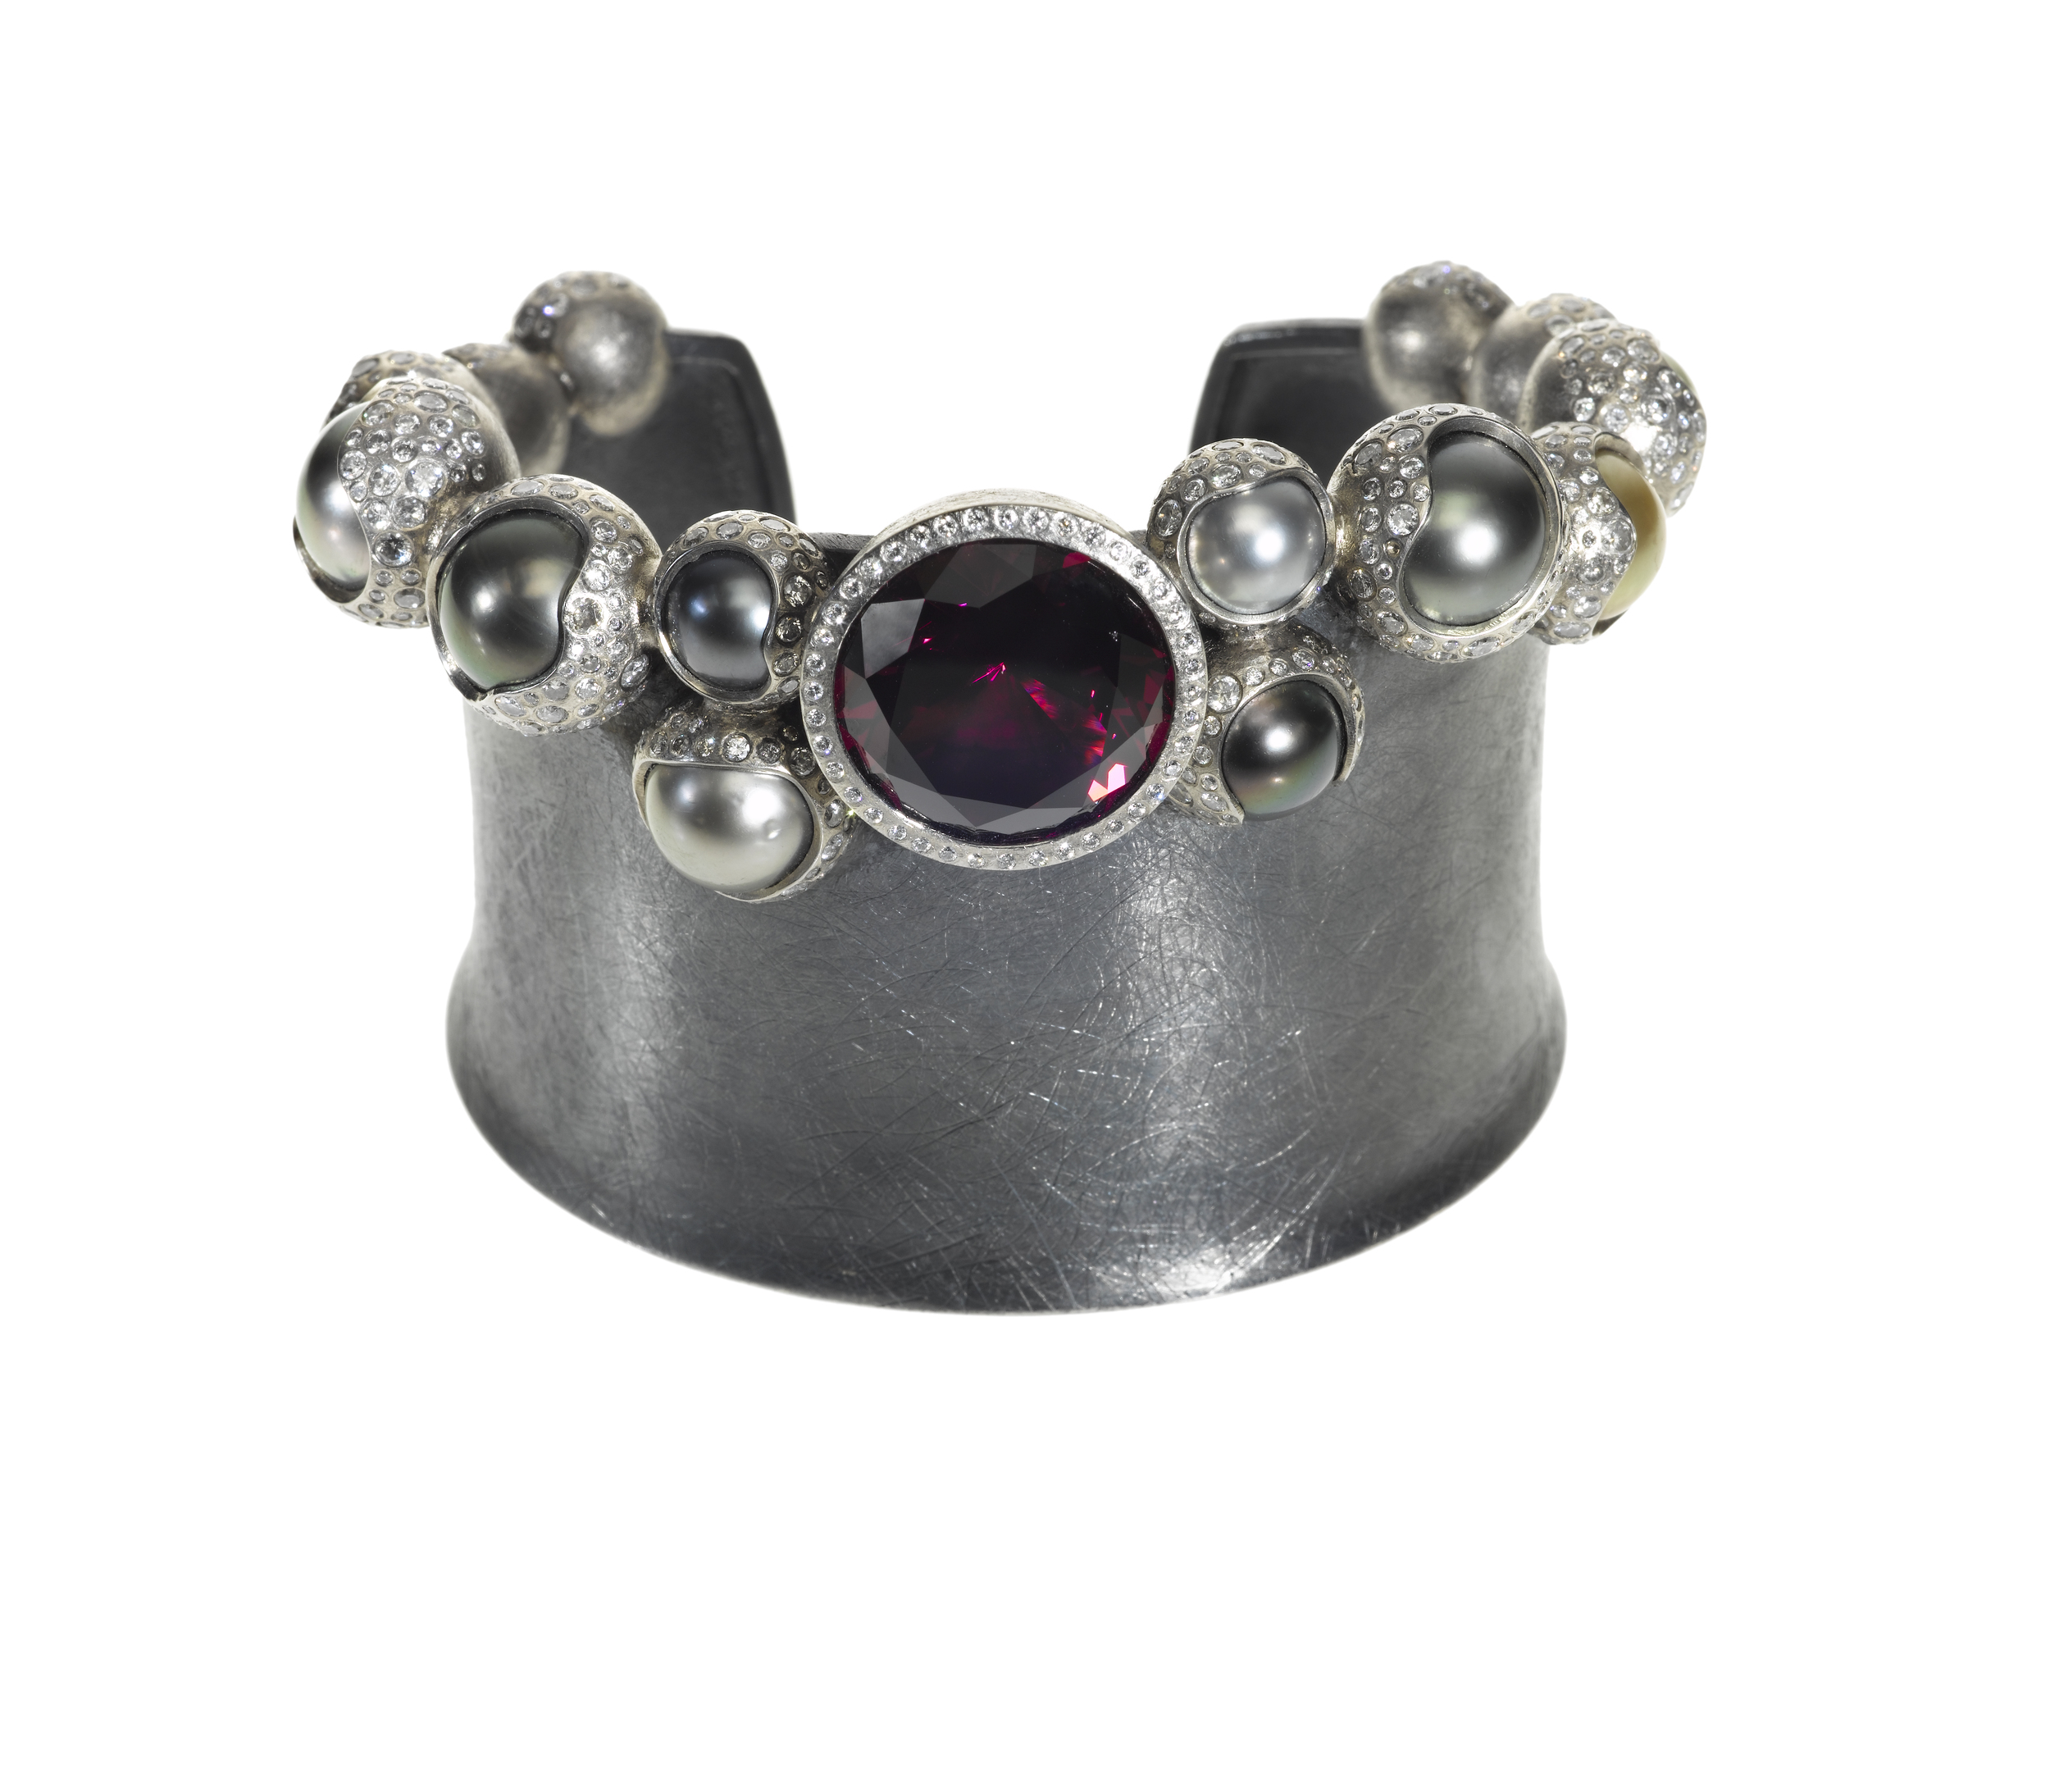 Thispearl and garnet cuffin Palladium, silver, garnet (24.97 ctw), white brilliants (9.528 ctw), and Tahitian pearls, $158,400,  available at Todd Reed .